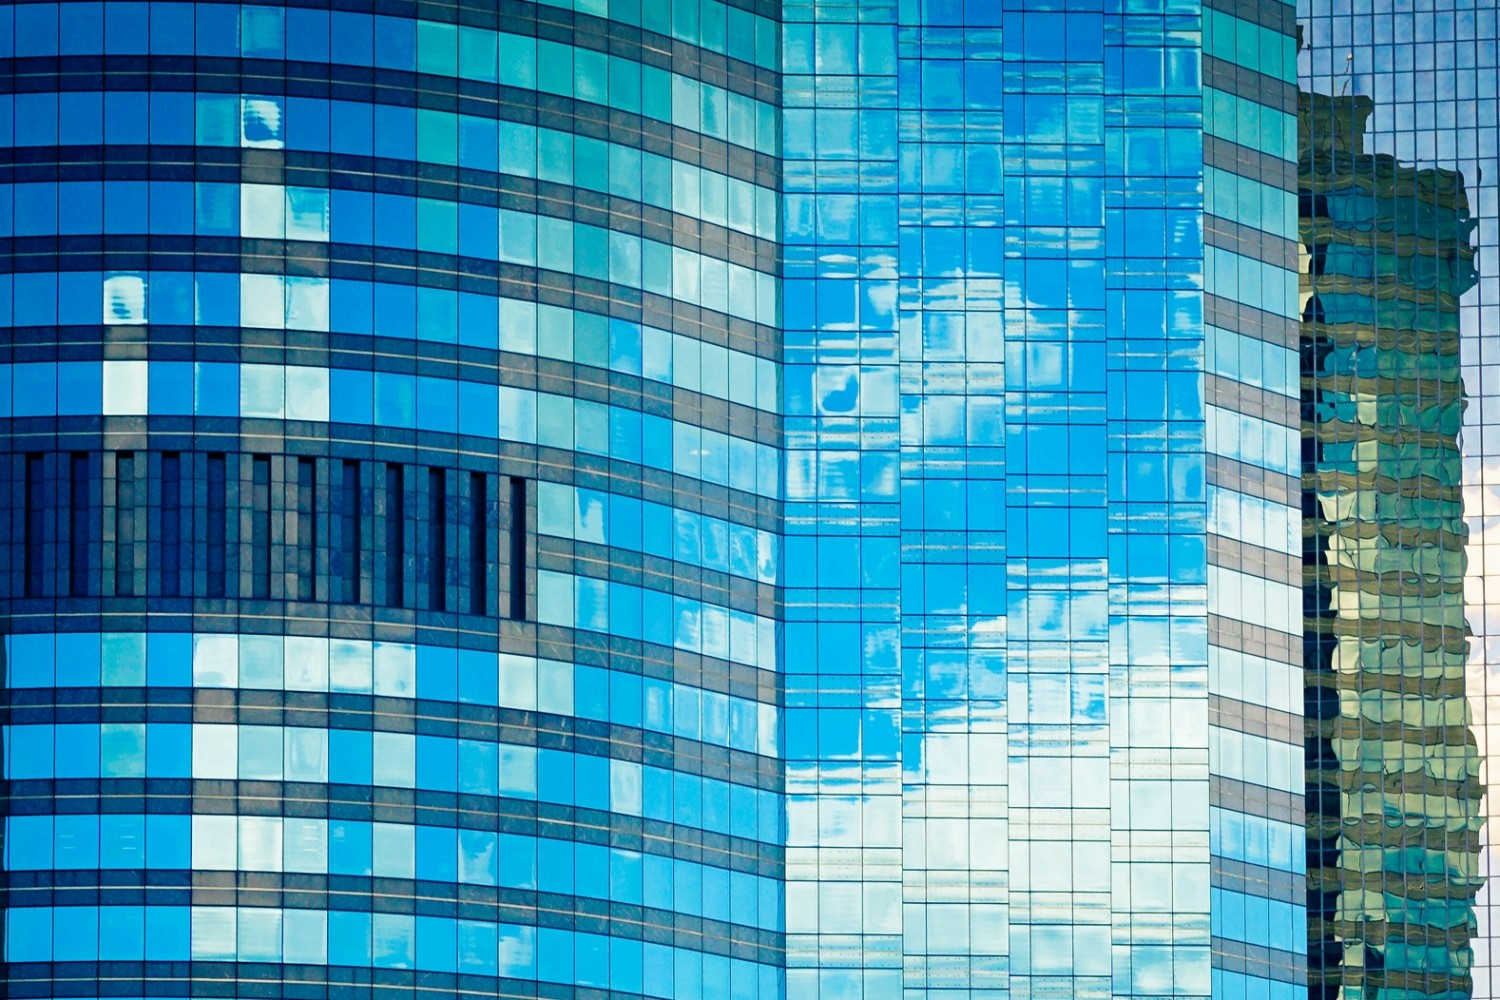 Office buildings abstract reflections